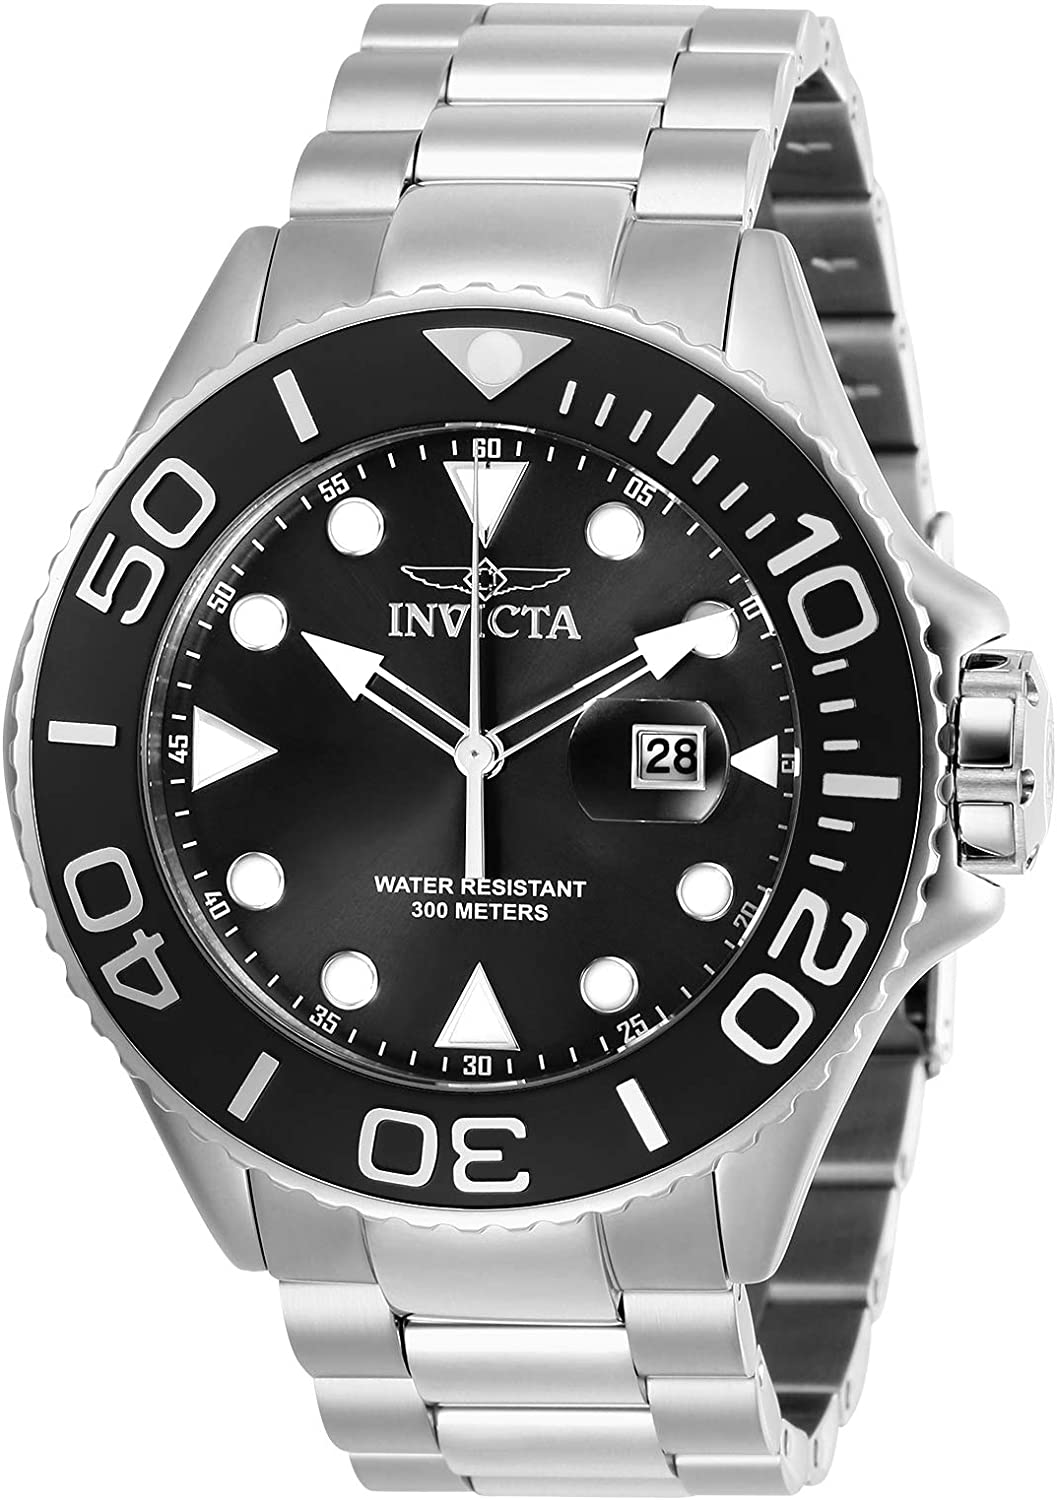 Invicta Men s Pro Diver Quartz Diving Watch with Stainless-Steel Strap, Silver, 24 Model 28765